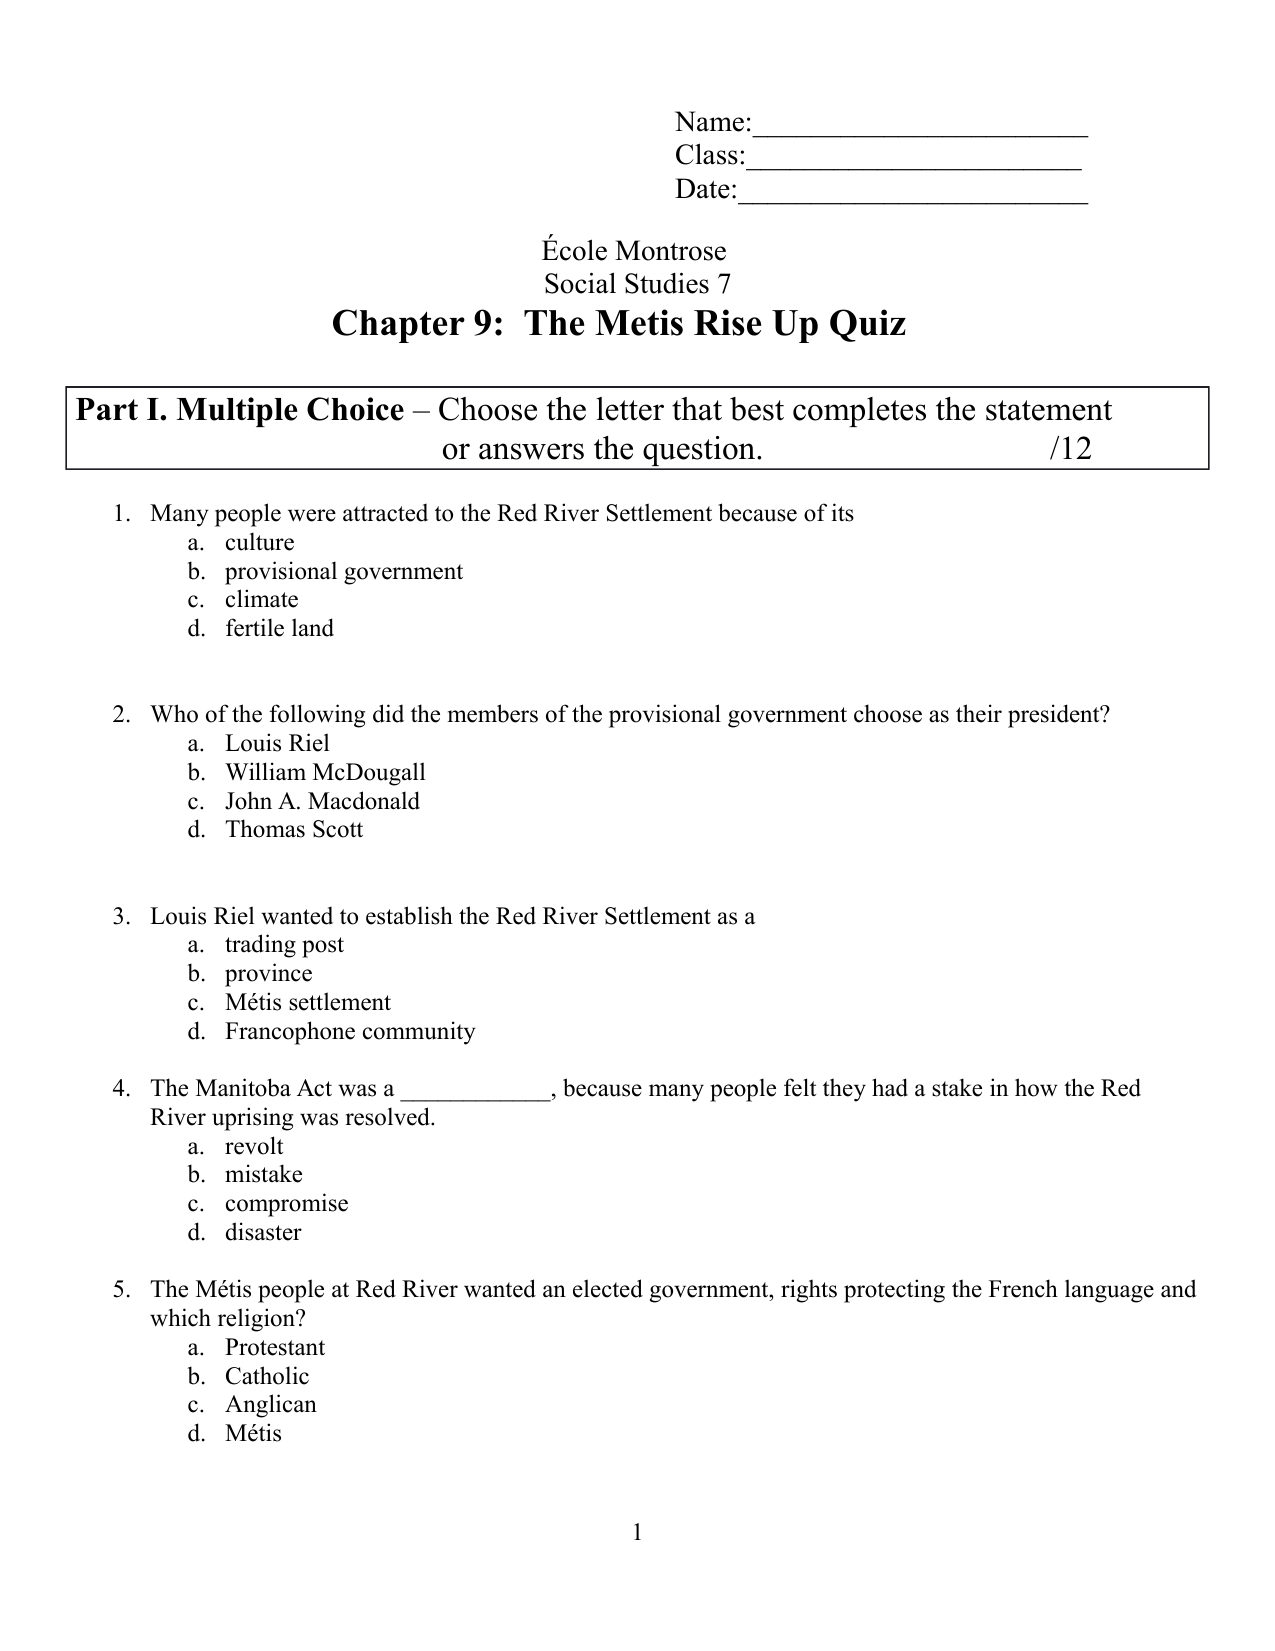 chapter 9 quiz Online taks practice prentice hall biology chapter 9: cellular respiration taks practice test click on the button next to the response that best answers the question.